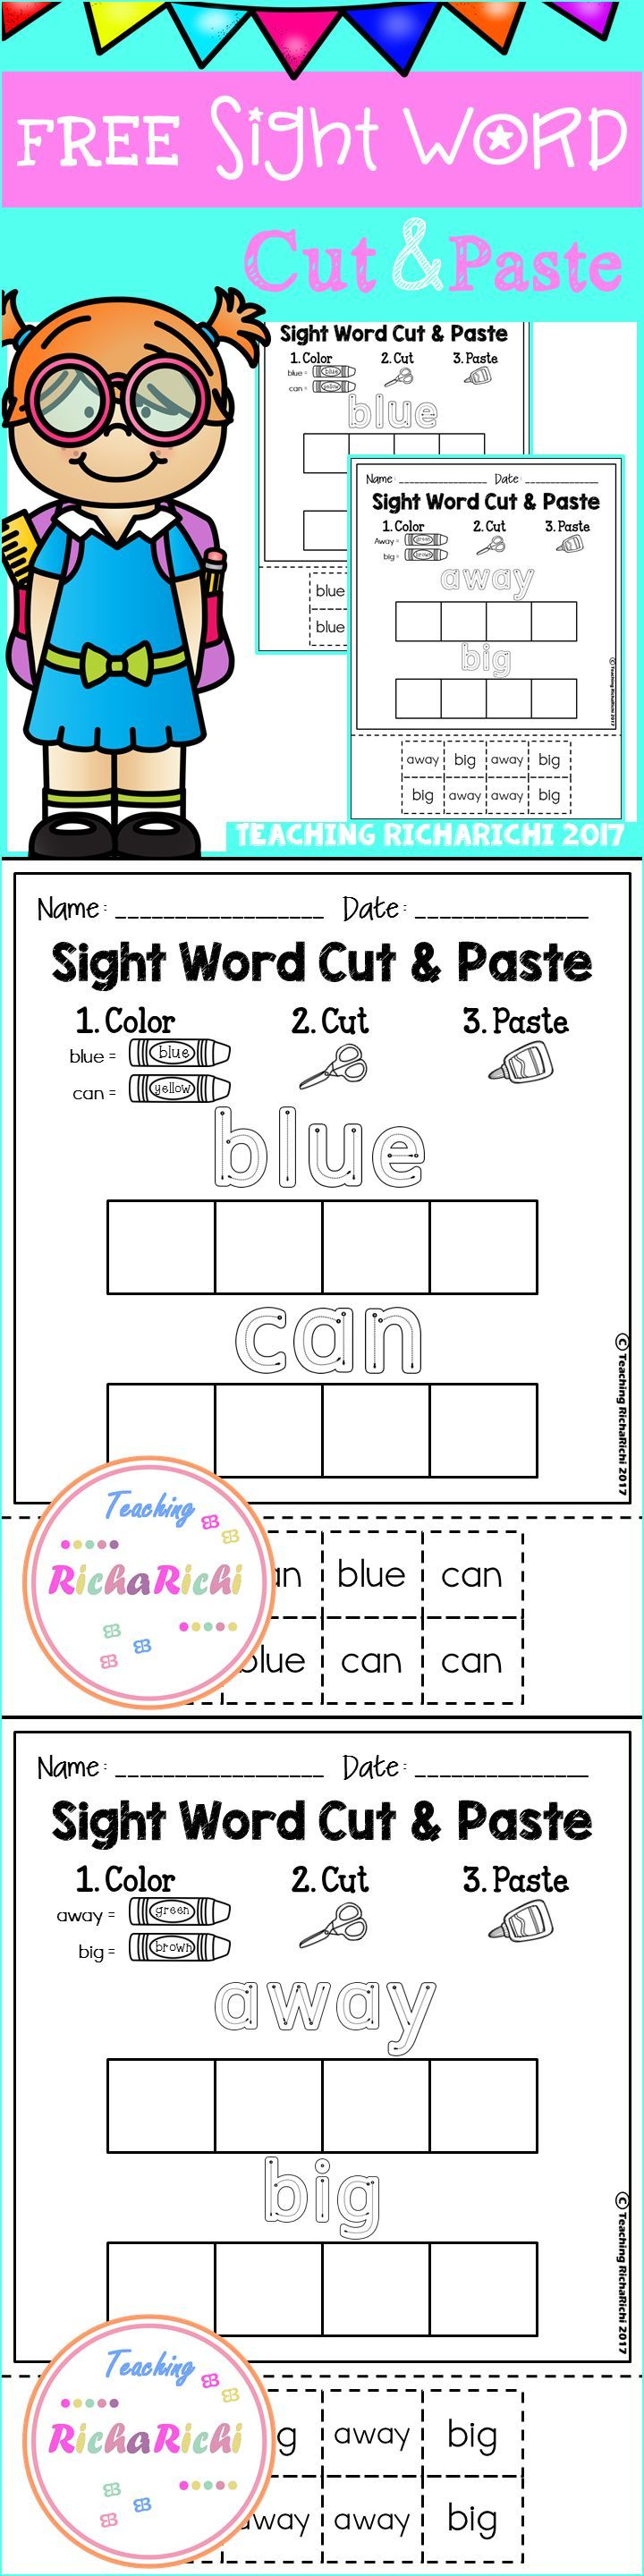 worksheet 1st Grade Sight Words Worksheets free kindergarten activities pre k first sight word cut and paste worksheets primer